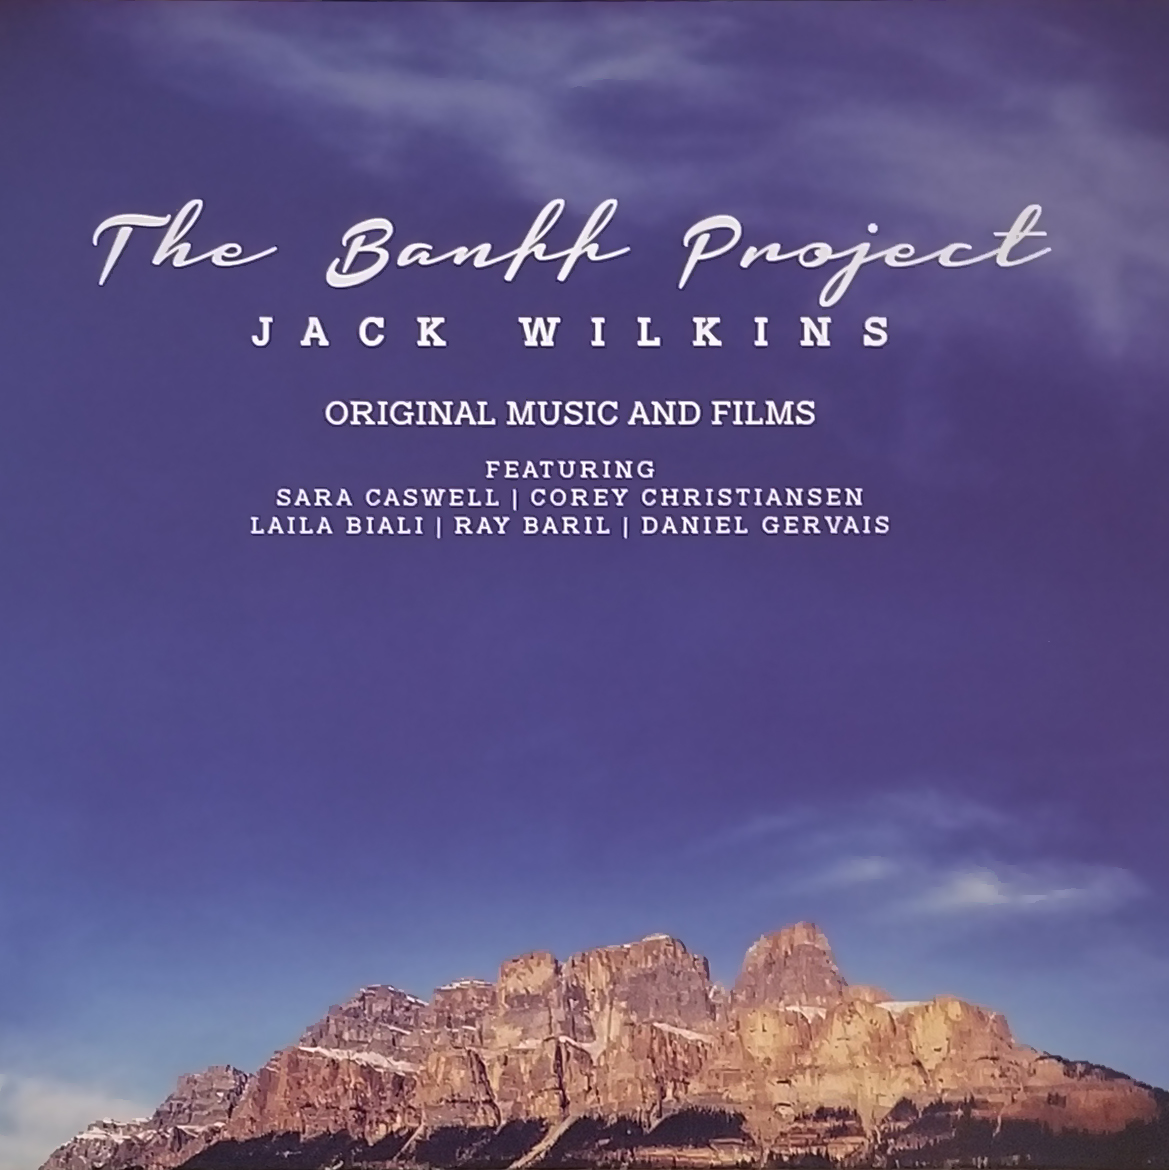 The Banff Project